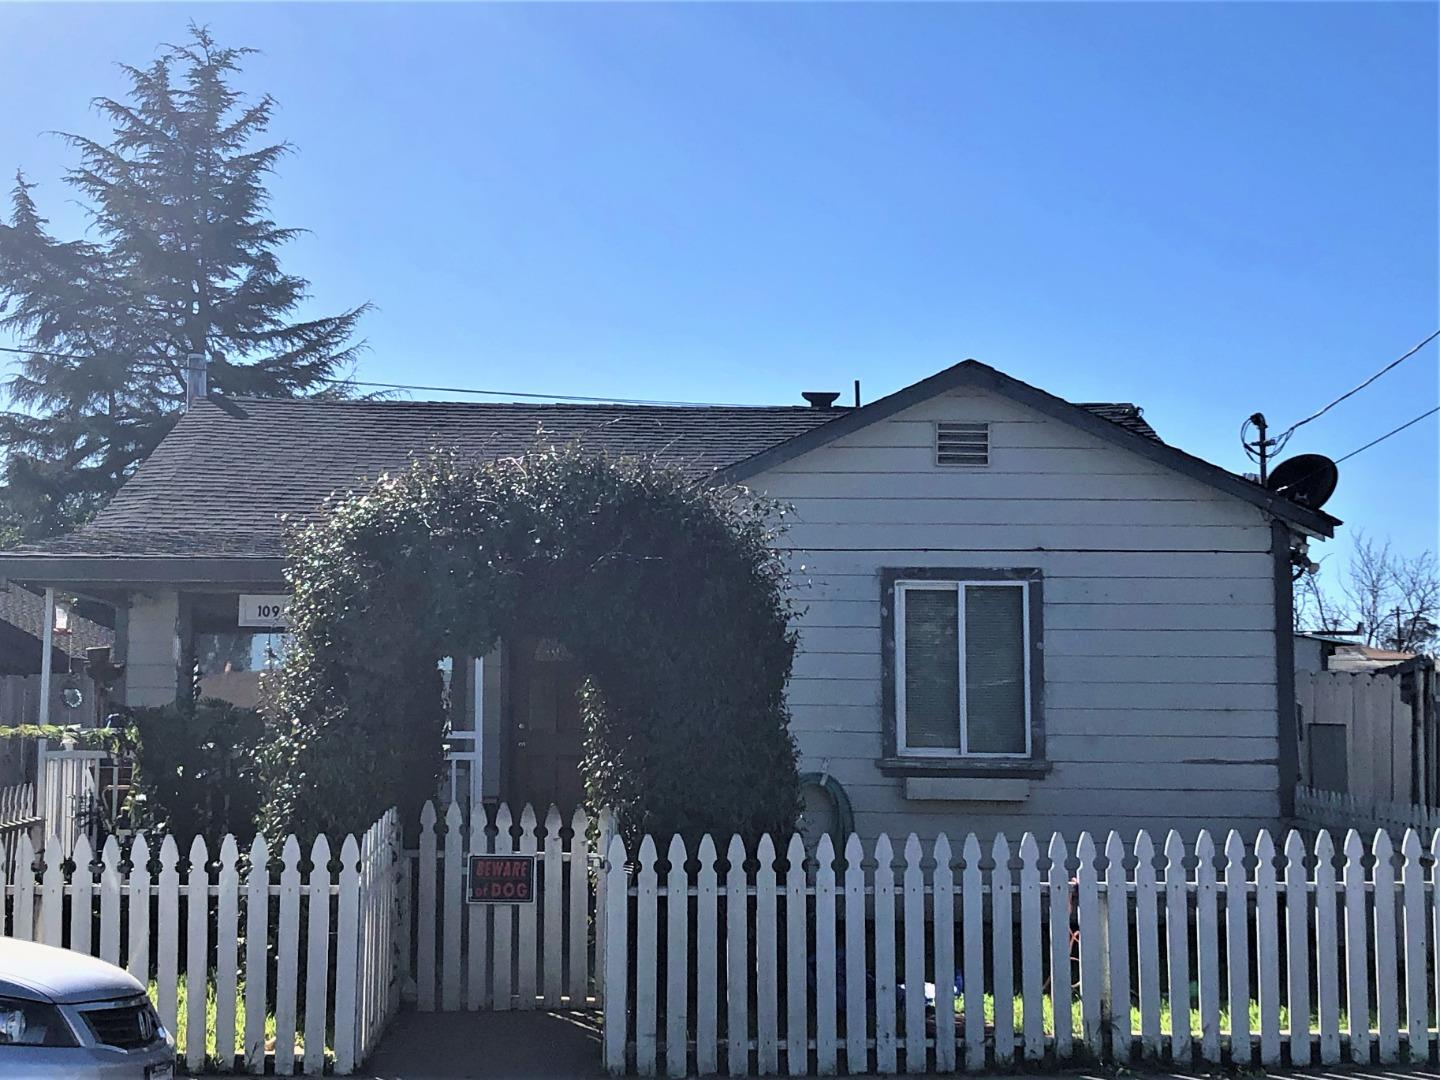 """Fantastic location on a quiet street in Freedom. With 1950's character, this 2 bedroom- with a bath in between- is ready for some TLC. Enter to a Dining/Living room combo. Kitchen has a nice view of the backyard. Open up the nook off the kitchen/bedroom to make a large pantry OR a master with walk-in closet OR a """"room to Zoom"""" office ORlaundry room. Front bedroom has a nice distant view of Mt. Madonna mountain range. Detached garage with attached workshop could be repaired or perhaps another unit (buyer investigations required for expansion). Contractors Special: Home needs upgrade/updates and will not likely qualify for an FHA/VA loan. If you love the location, this is a sweet spot on a larger than average lot (7000+sqft). Centralized location near breweries, restaurants, shopping and easy commute location. I love this street and I bet you will too!"""